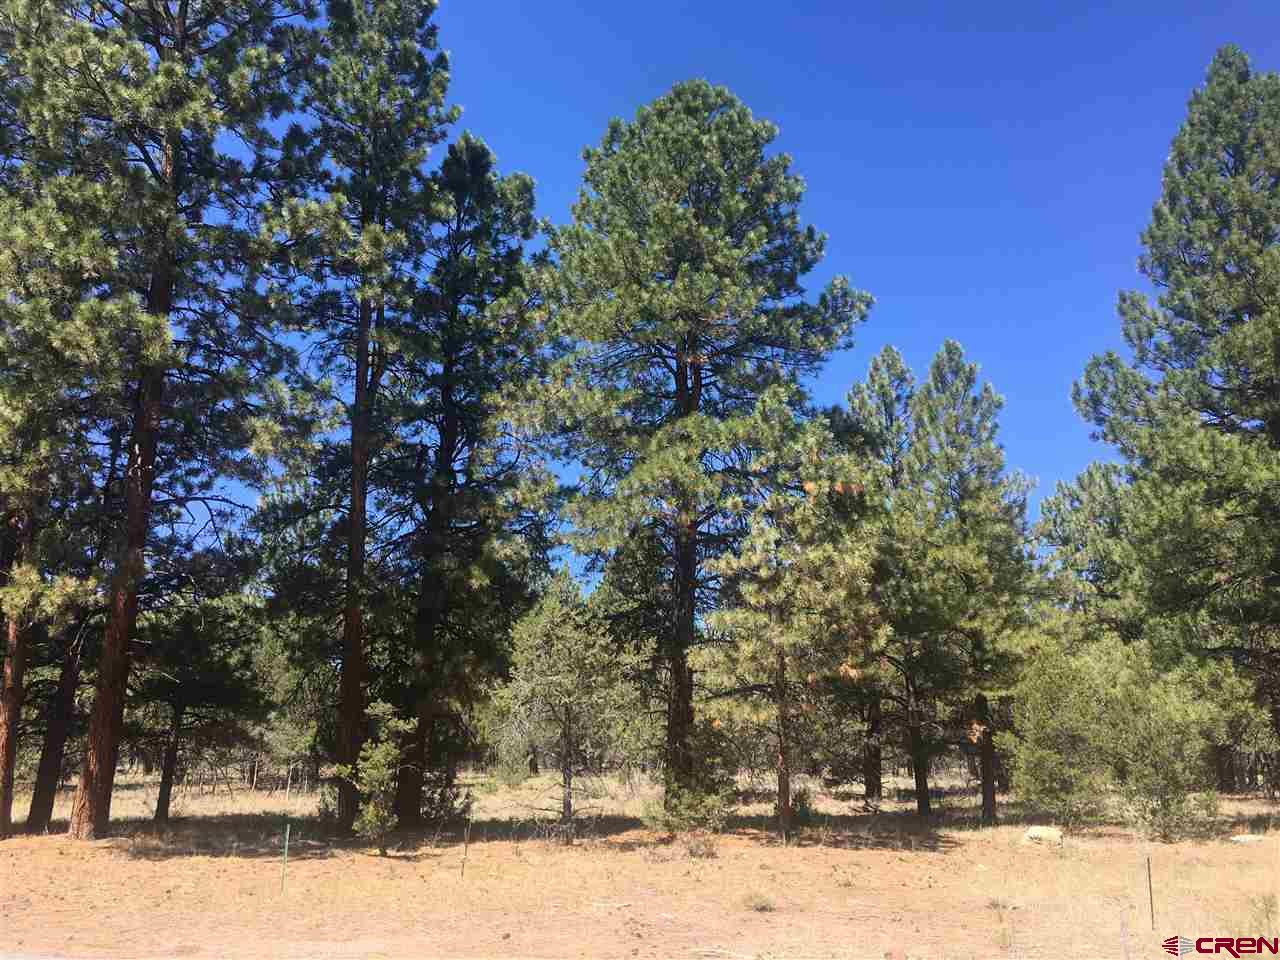 Fantastic lot located in the Divide Ranch and Club. This property offers multiple building sites to choose from, as well as gorgeous ponderosa trees for privacy. All utilities are to the lot line.  Approximately 1/4 mile from the clubhouse and golf course, allowing you quick access for your tee time or drinks with friends! Only 15 minutes to the Town of Ridgway, 45 Minutes to Telluride, and 35 Minutes to Montrose. This is where you want to be!